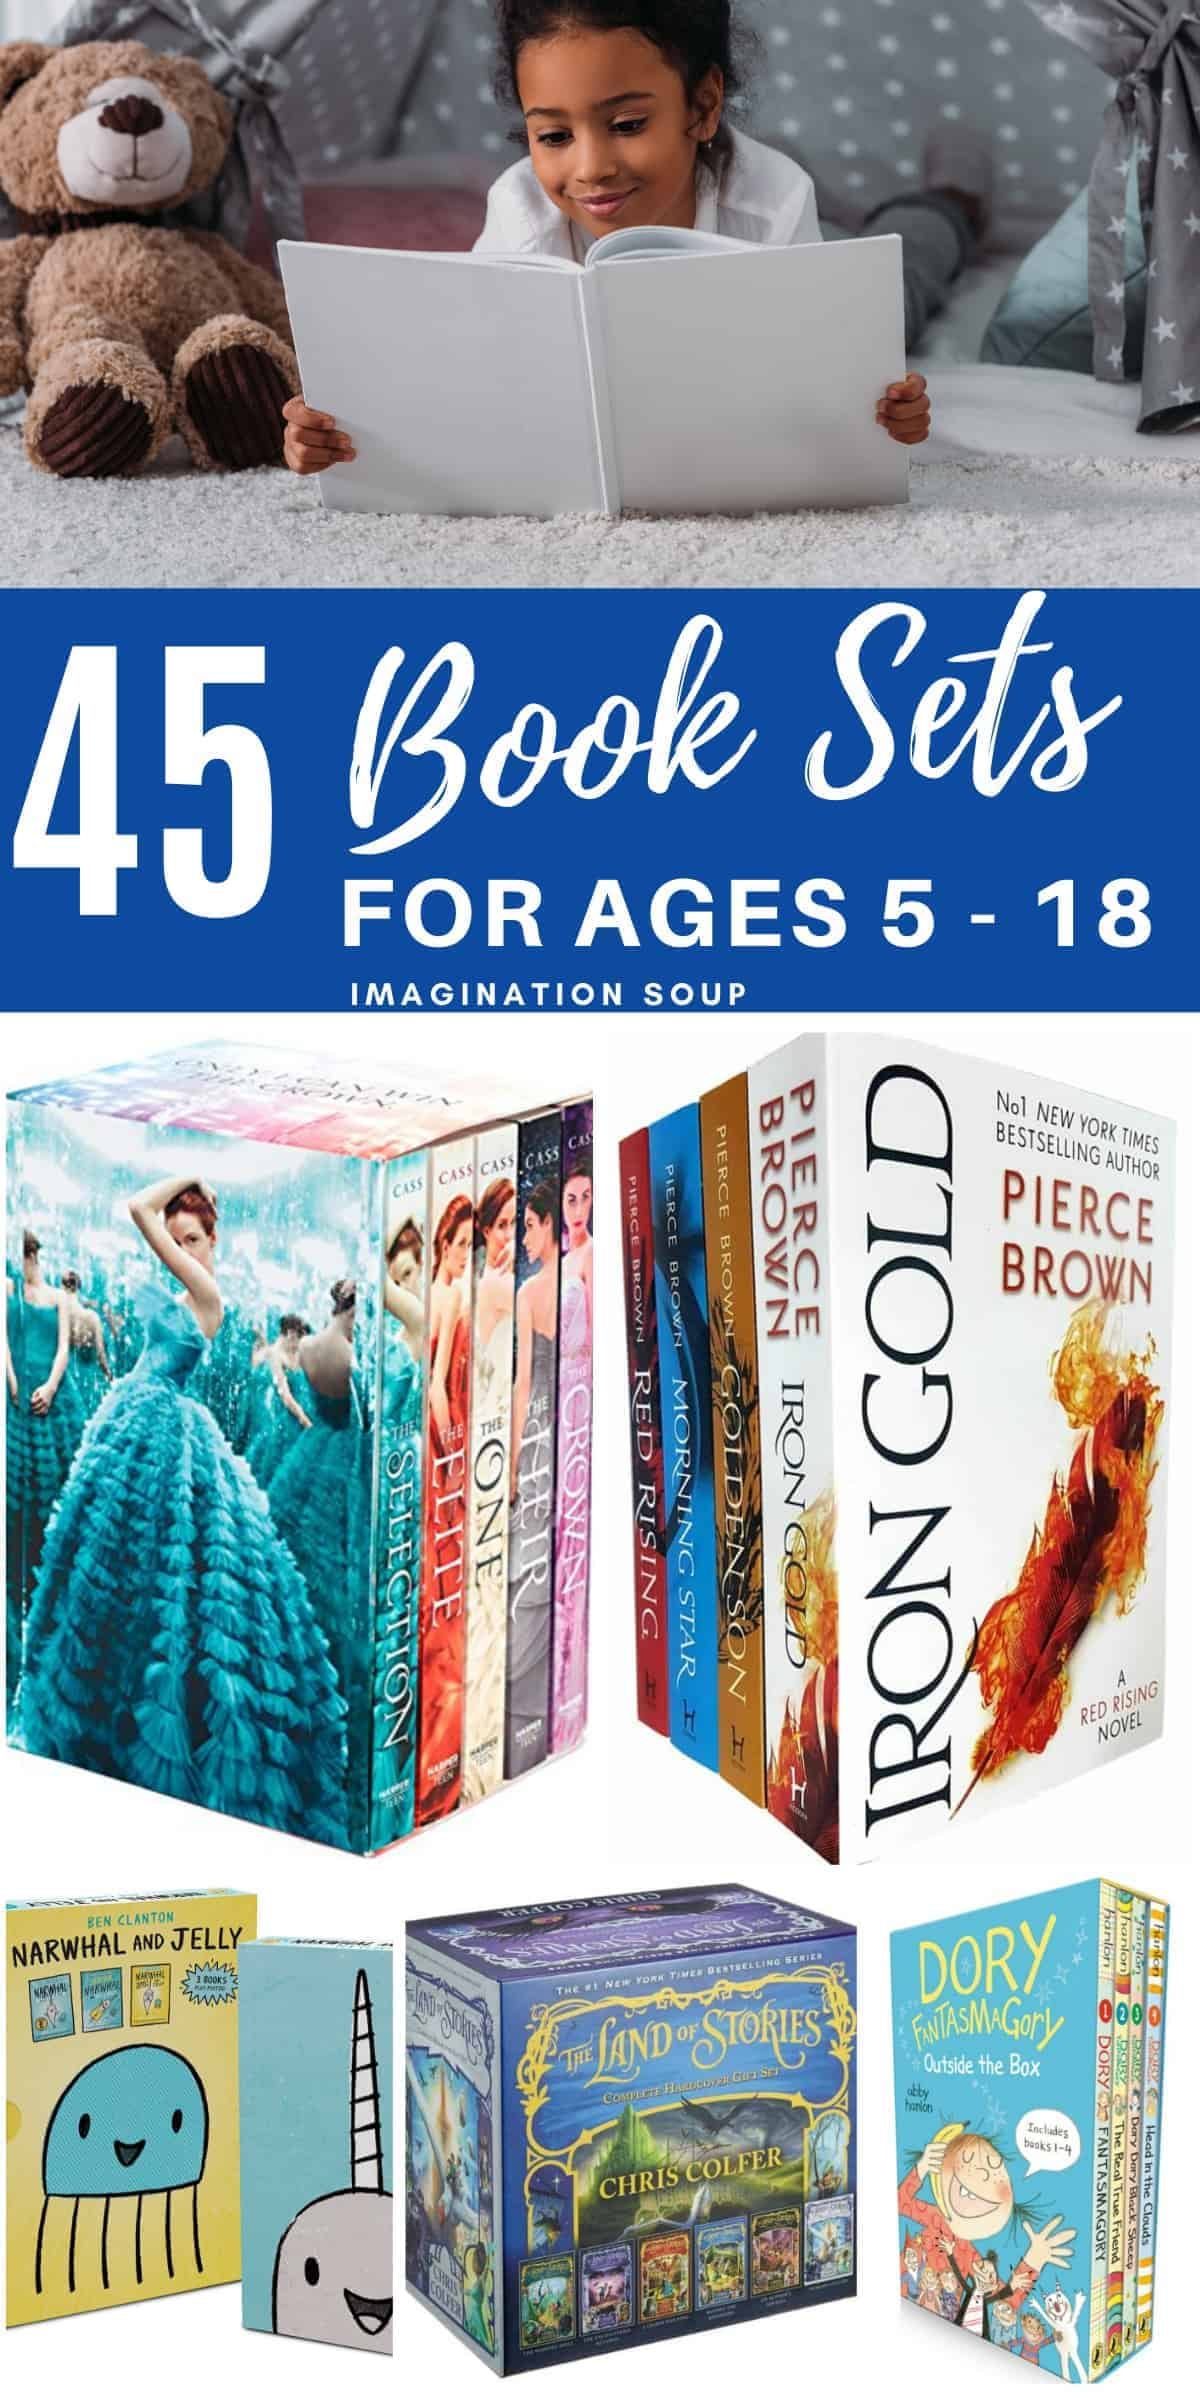 the best boxed book series sets for kids and teens (these make great gifts!)